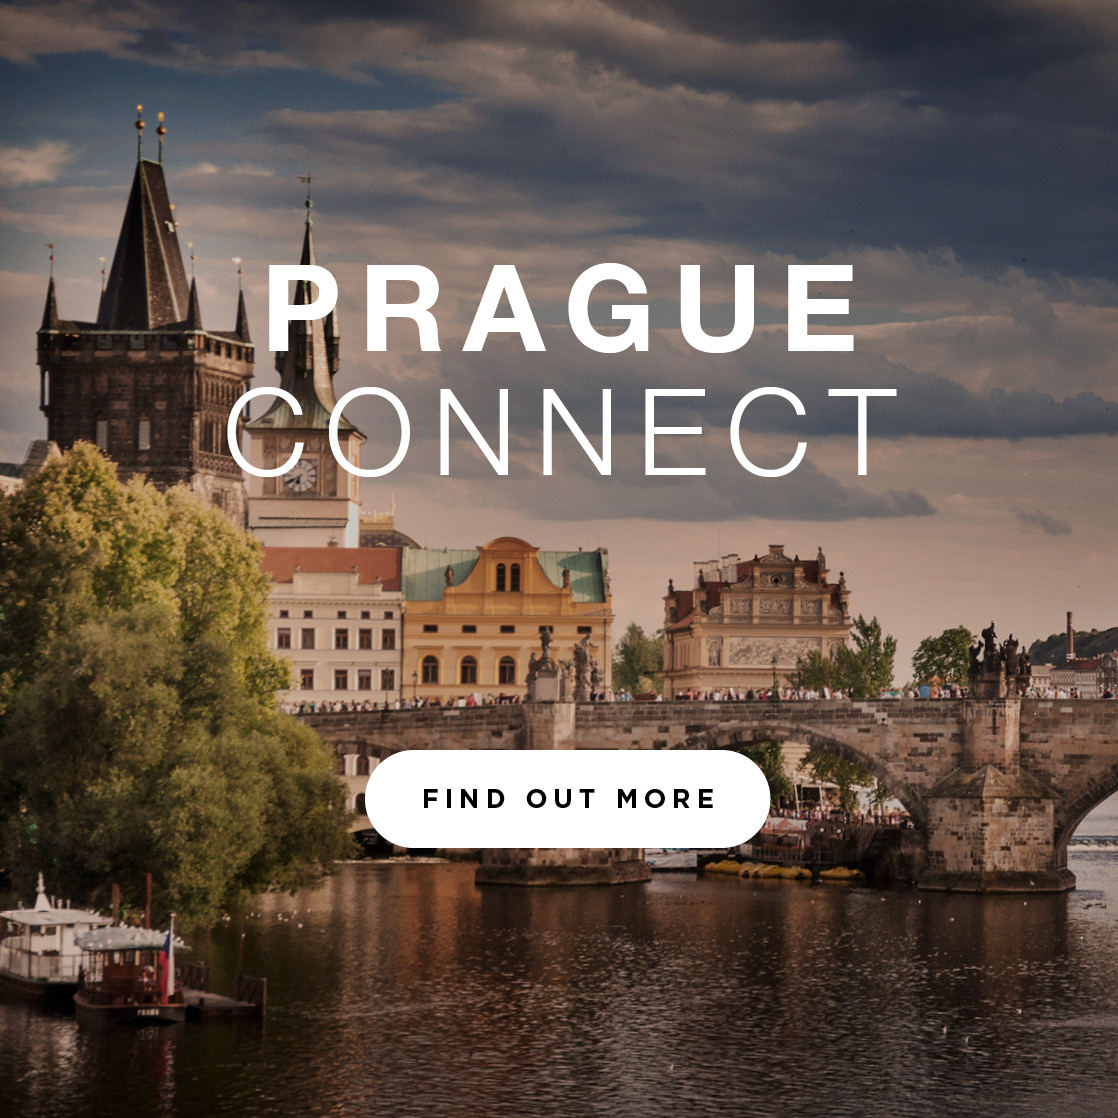 Prague Connect – Find out more